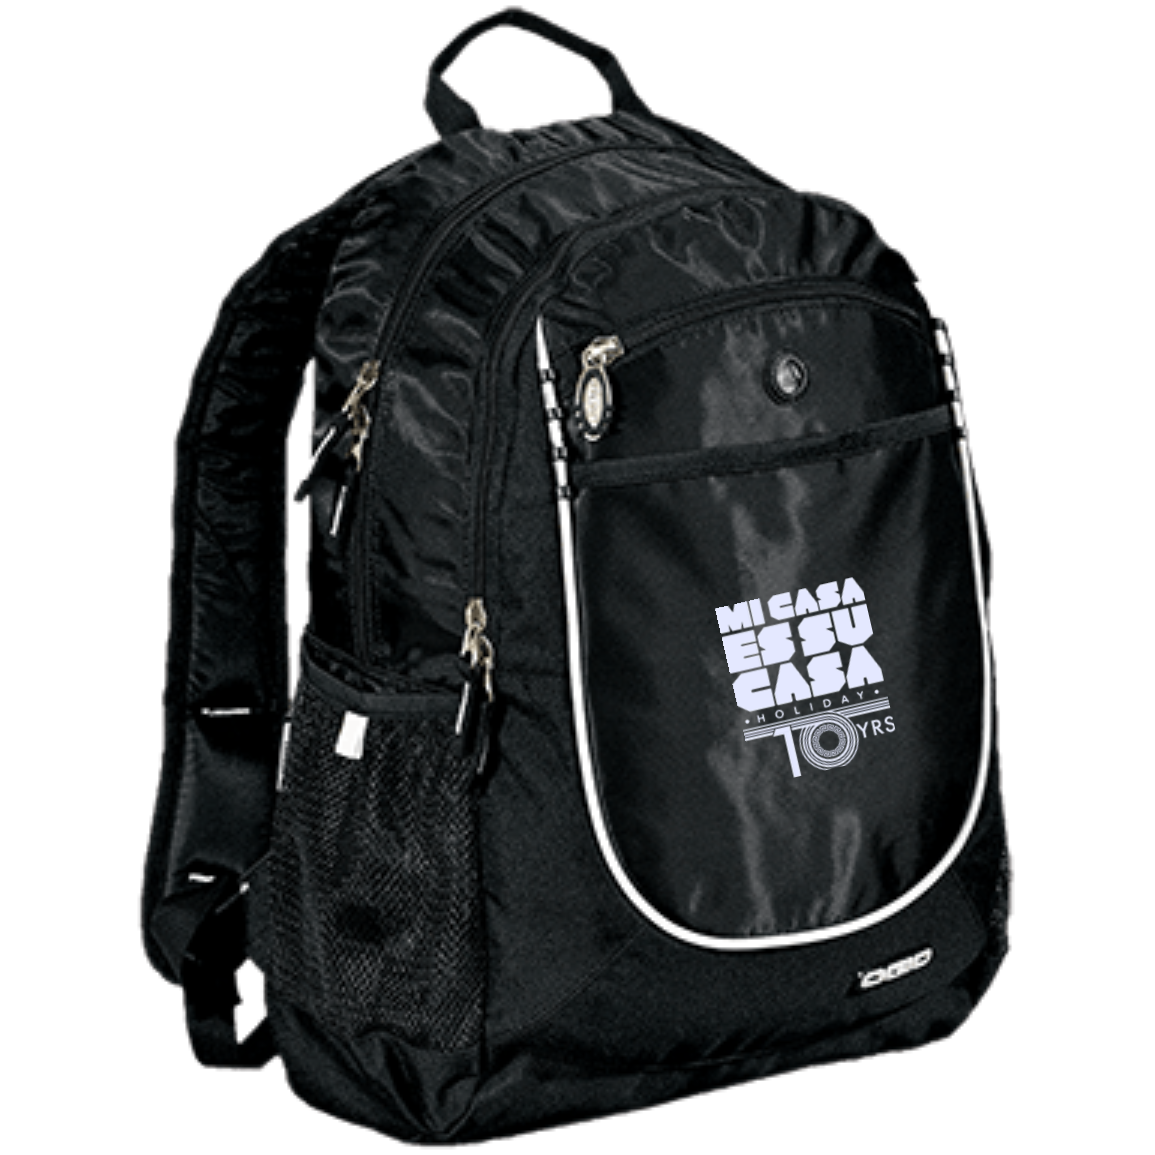 Mi Casa Holiday 10 Yr Rugged Book-Bag